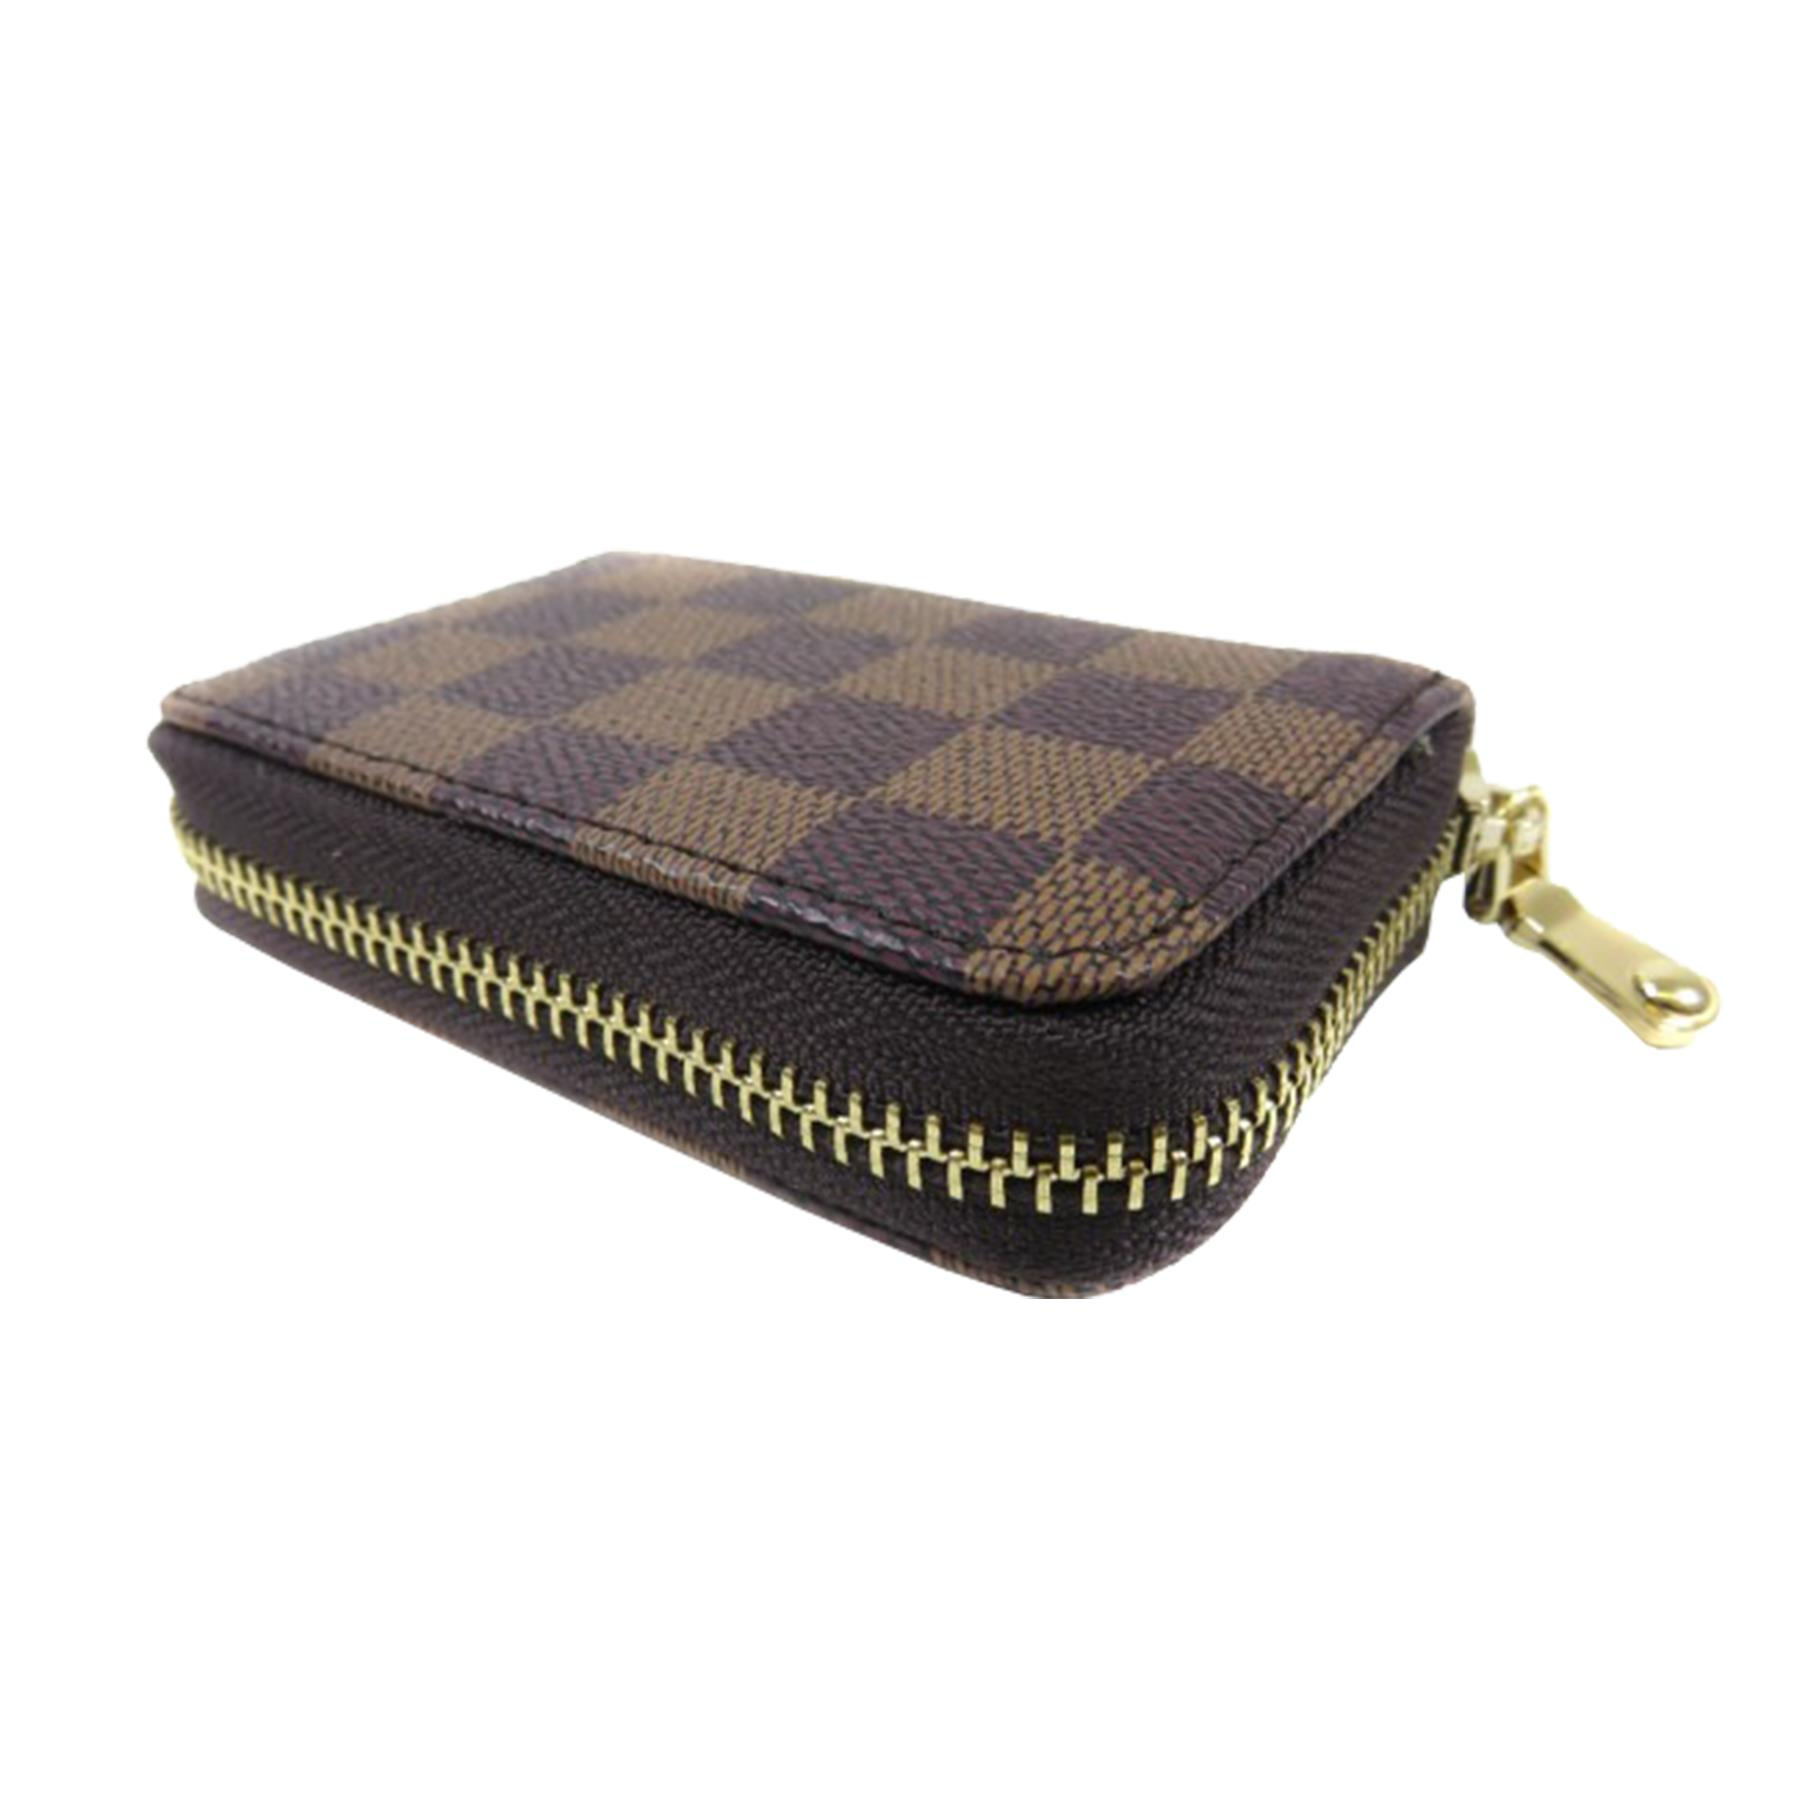 New Ladies Faux Leather Check Print Crossbody Bag Purse Wallet